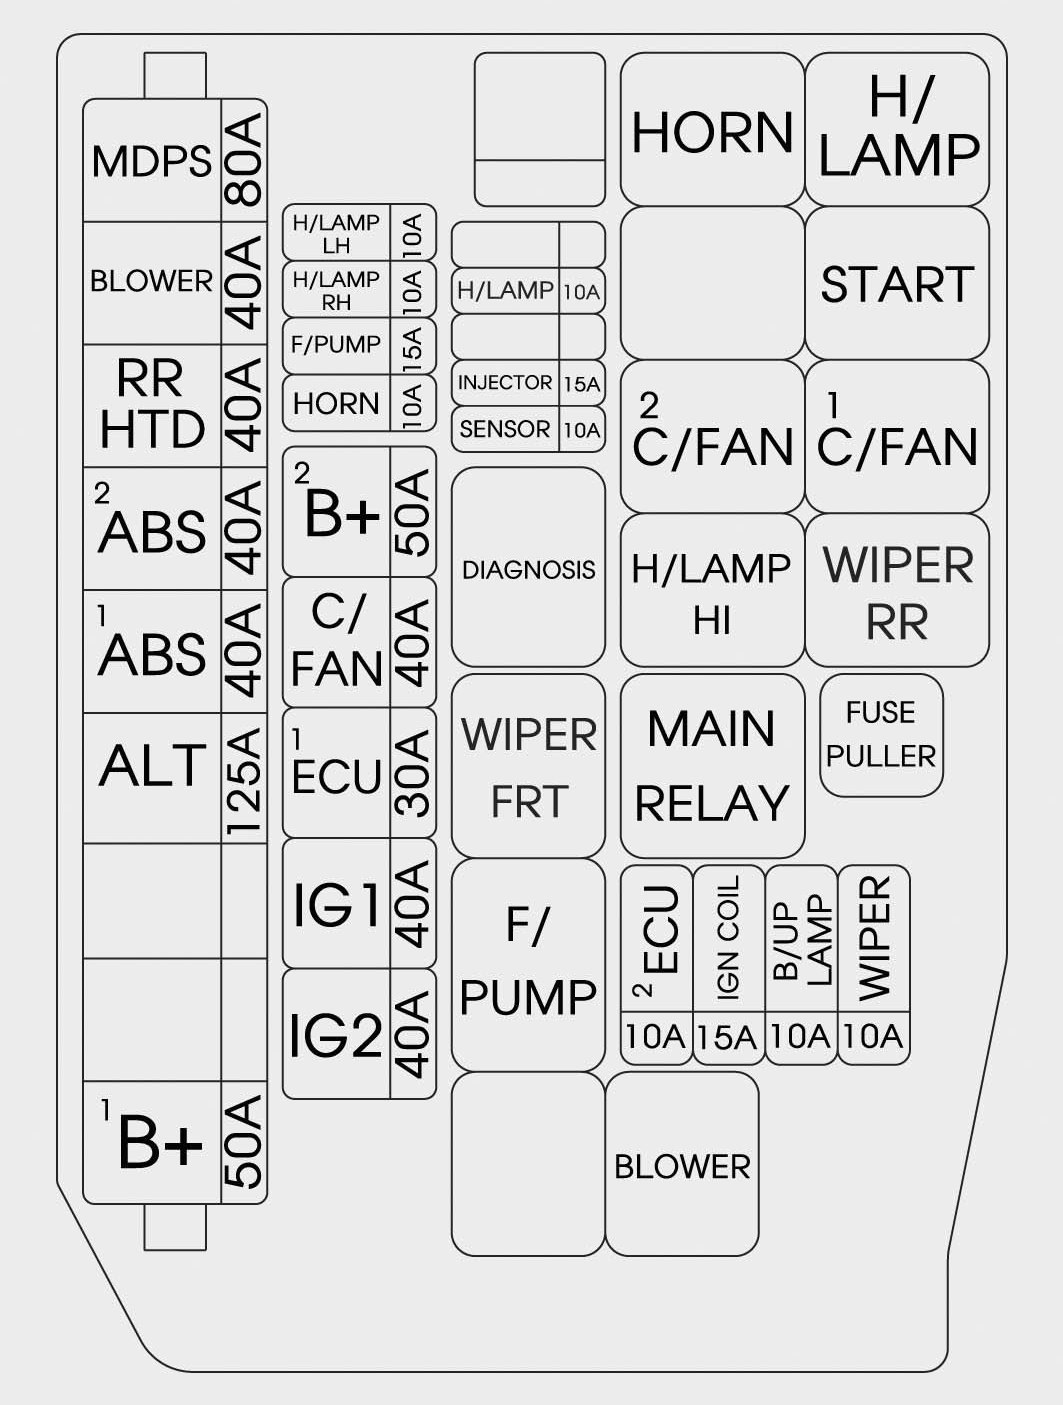 Hyundai Sonata Fuse Box Diagram. Hyundai. Auto Parts